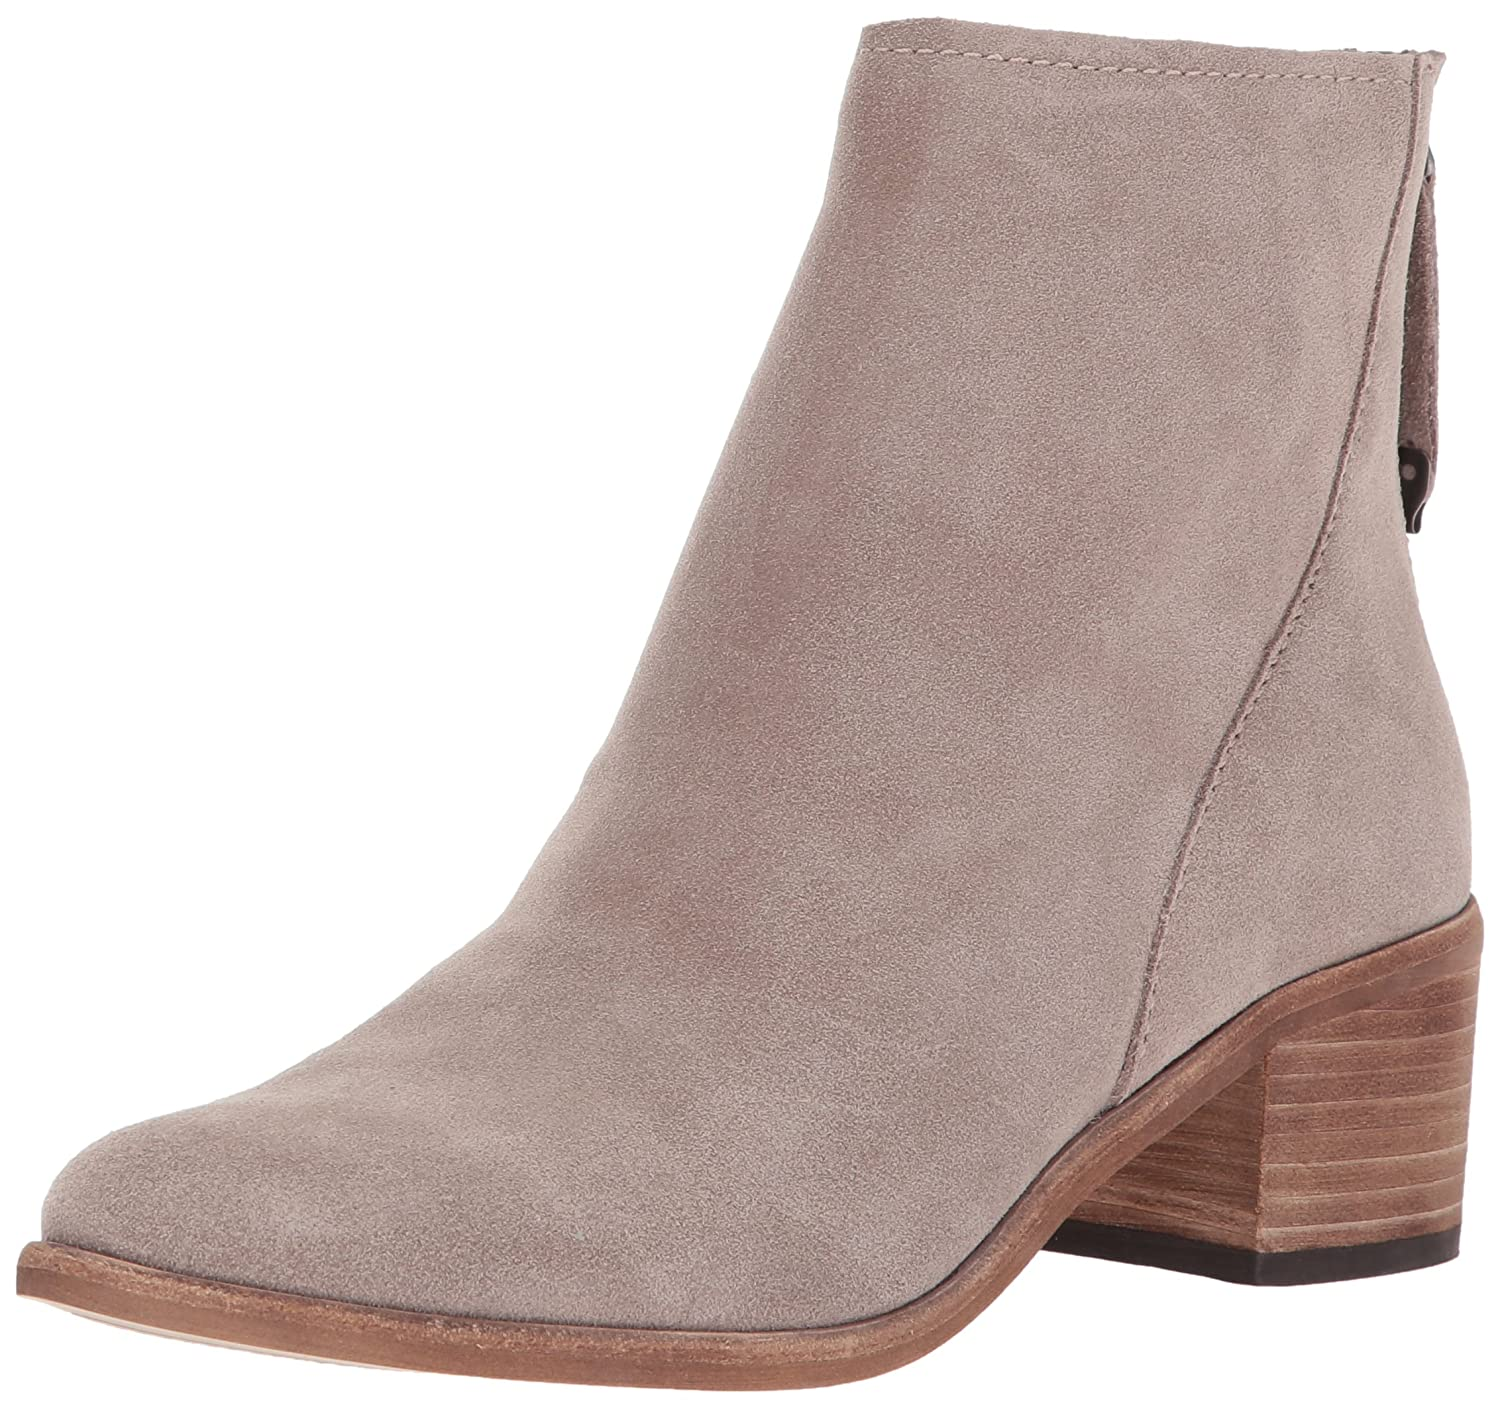 Dolce Vita Women's Cassius Ankle Boot B071G2962D 12 B(M) US|Taupe Suede